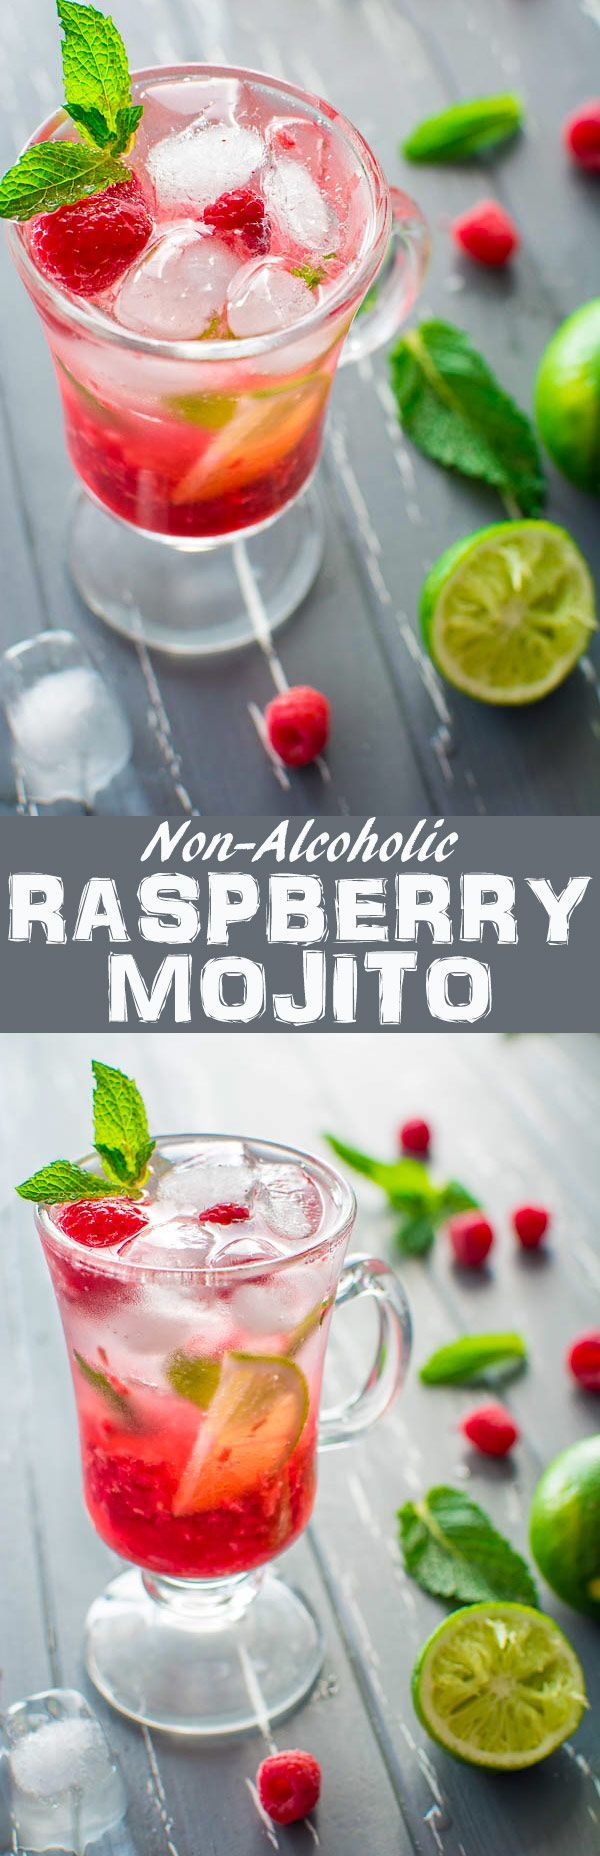 This refreshing Non-Alcoholic Raspberry Mojito is what you need on hot summer day. A combination of fresh raspberries, mint, lime juice, sparkling soda and a hint of sweetness will make you crave for more! ❤️ http://COOKTORIA.COM